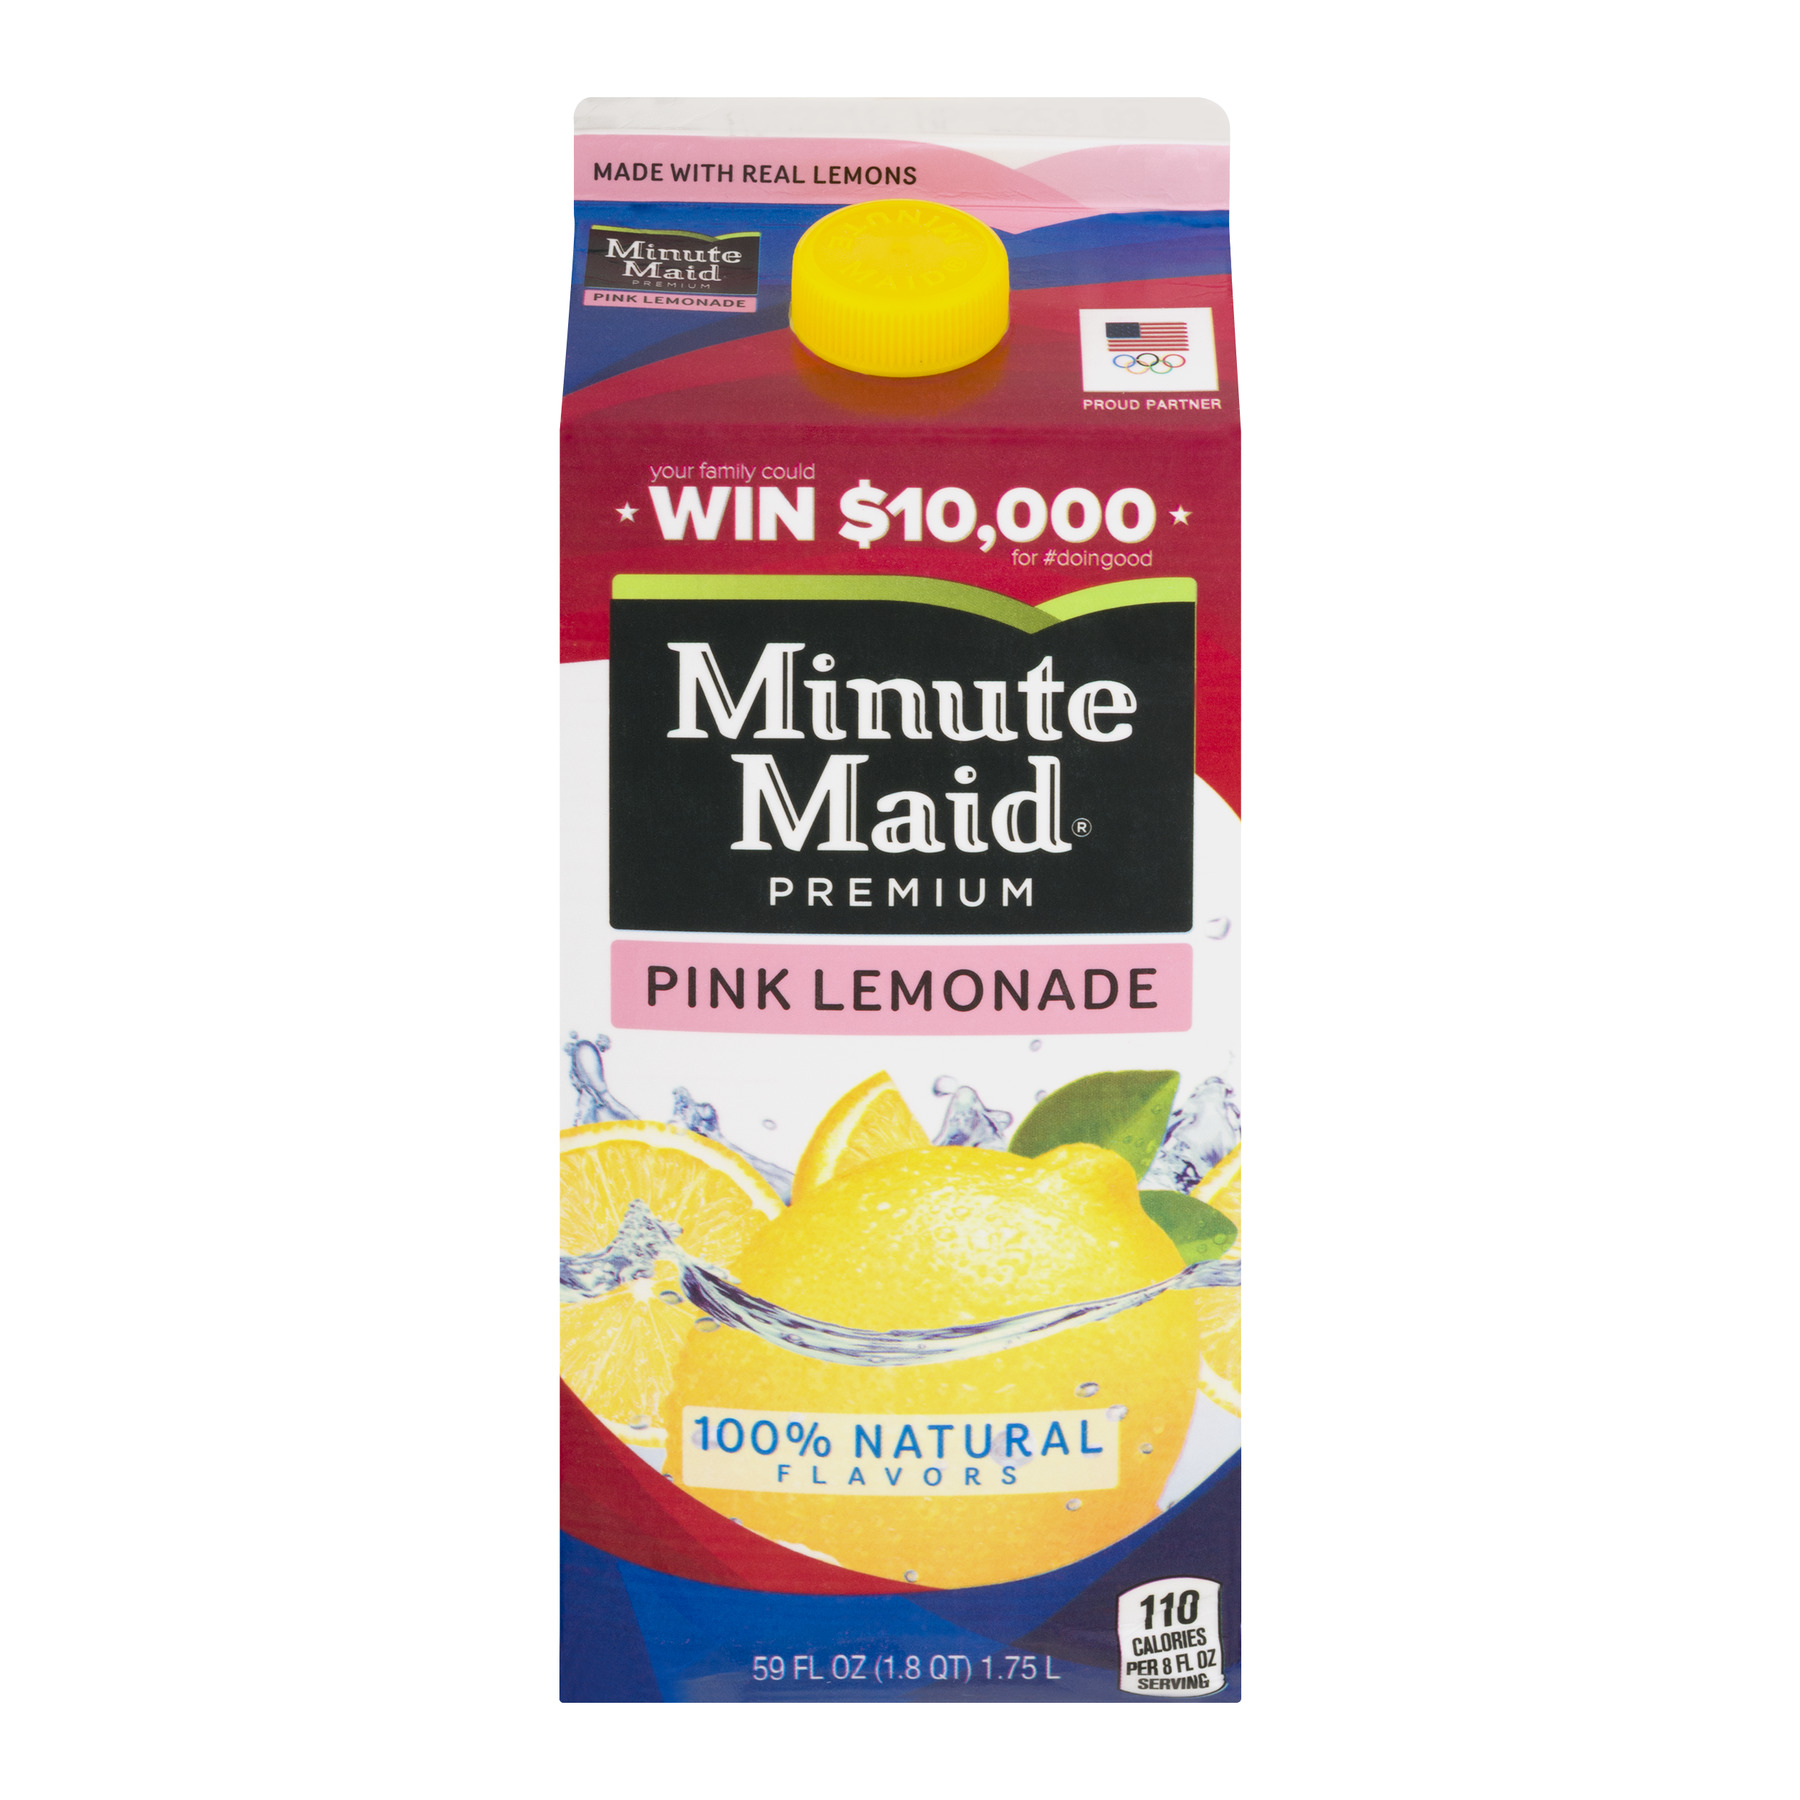 Minute Maid Premium Pink Lemonade, 59.0 FL OZ